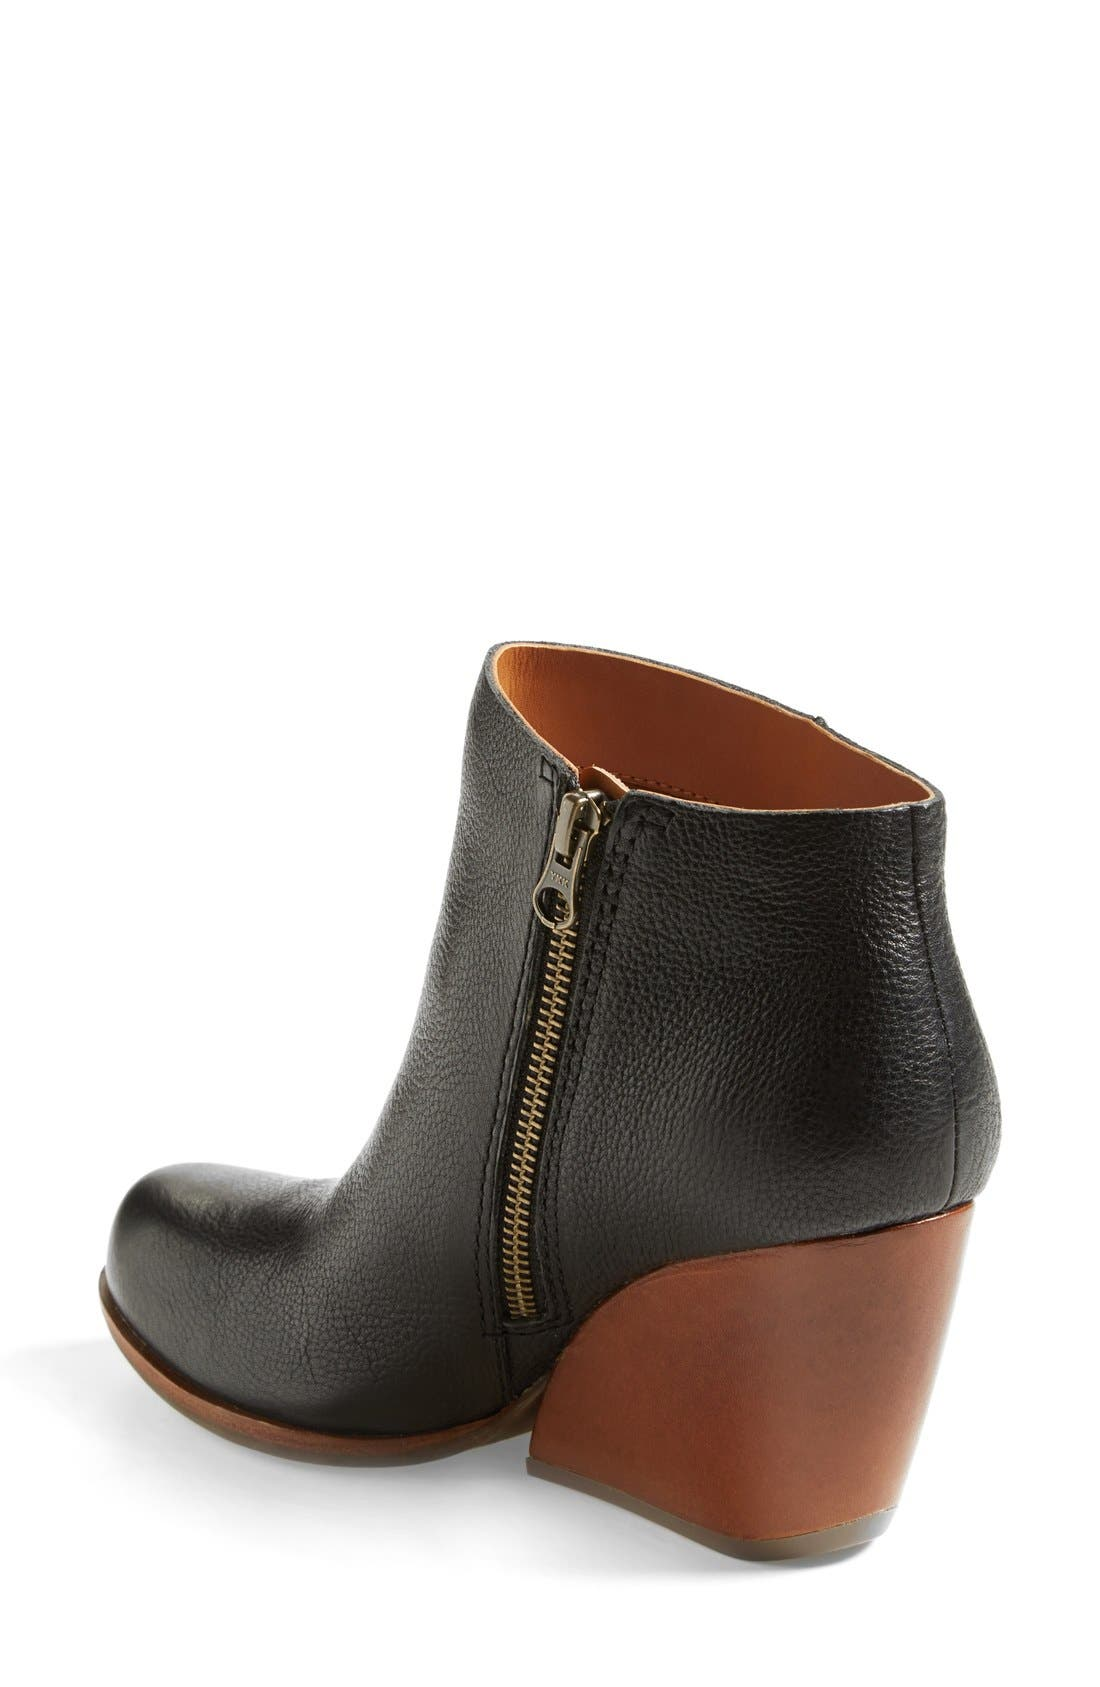 'Natalya' Burnished Leather Demi Wedge Boot,                             Alternate thumbnail 2, color,                             001